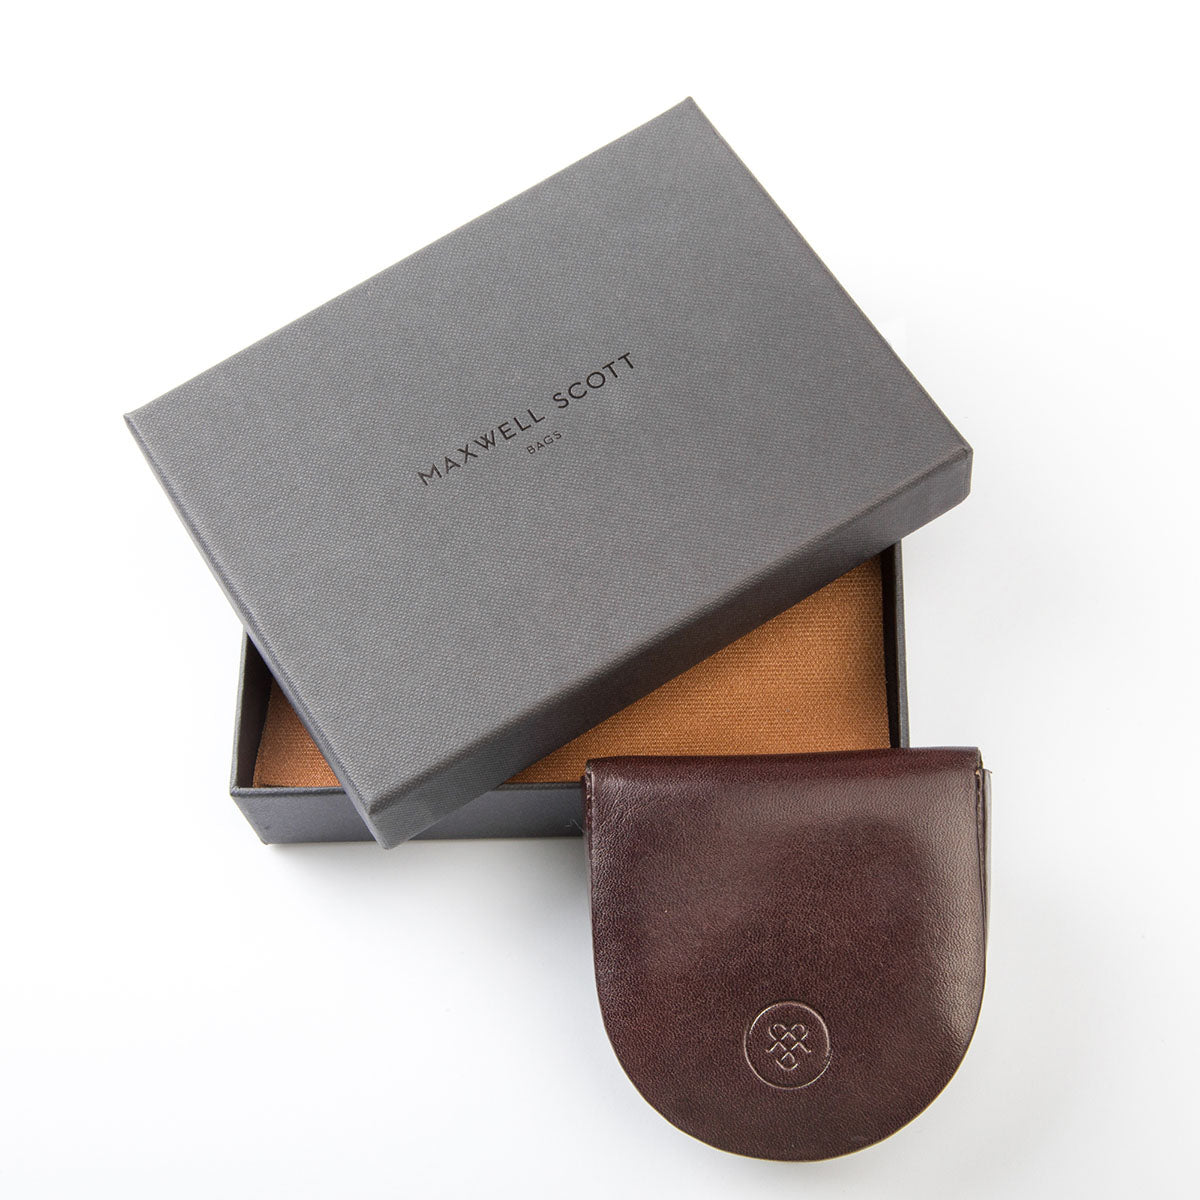 Image 5 of the 'Savino' Brown Veg-Tanned Leather Coin Wallet